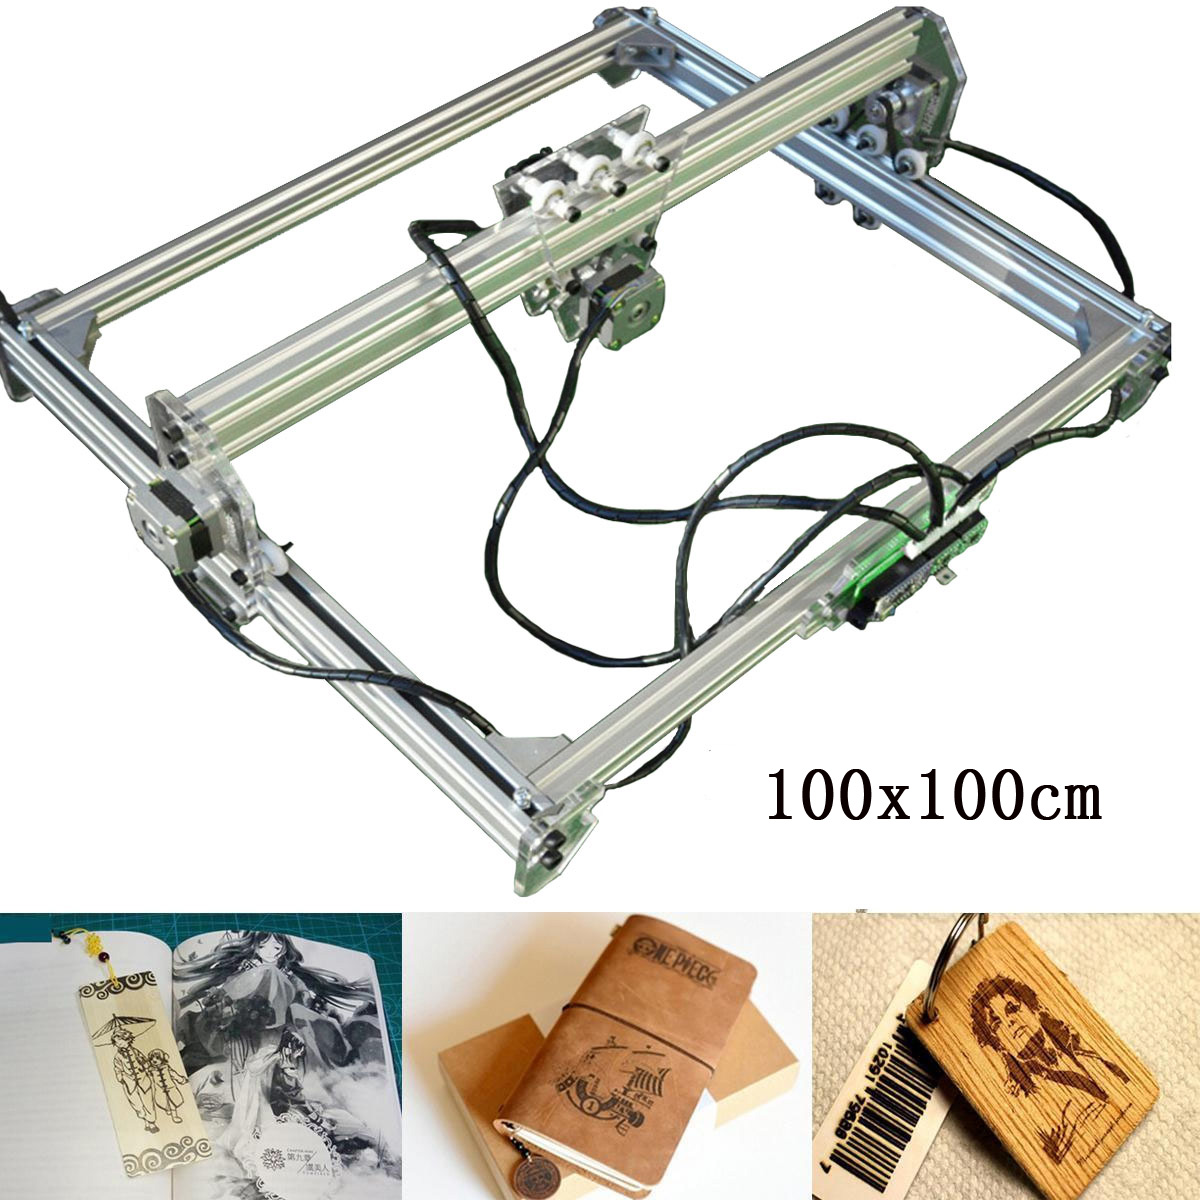 2500mw 100*100cm DIY Desktop Laser Engraving Cutter Engraver Carving Machine Marking Logo Printer